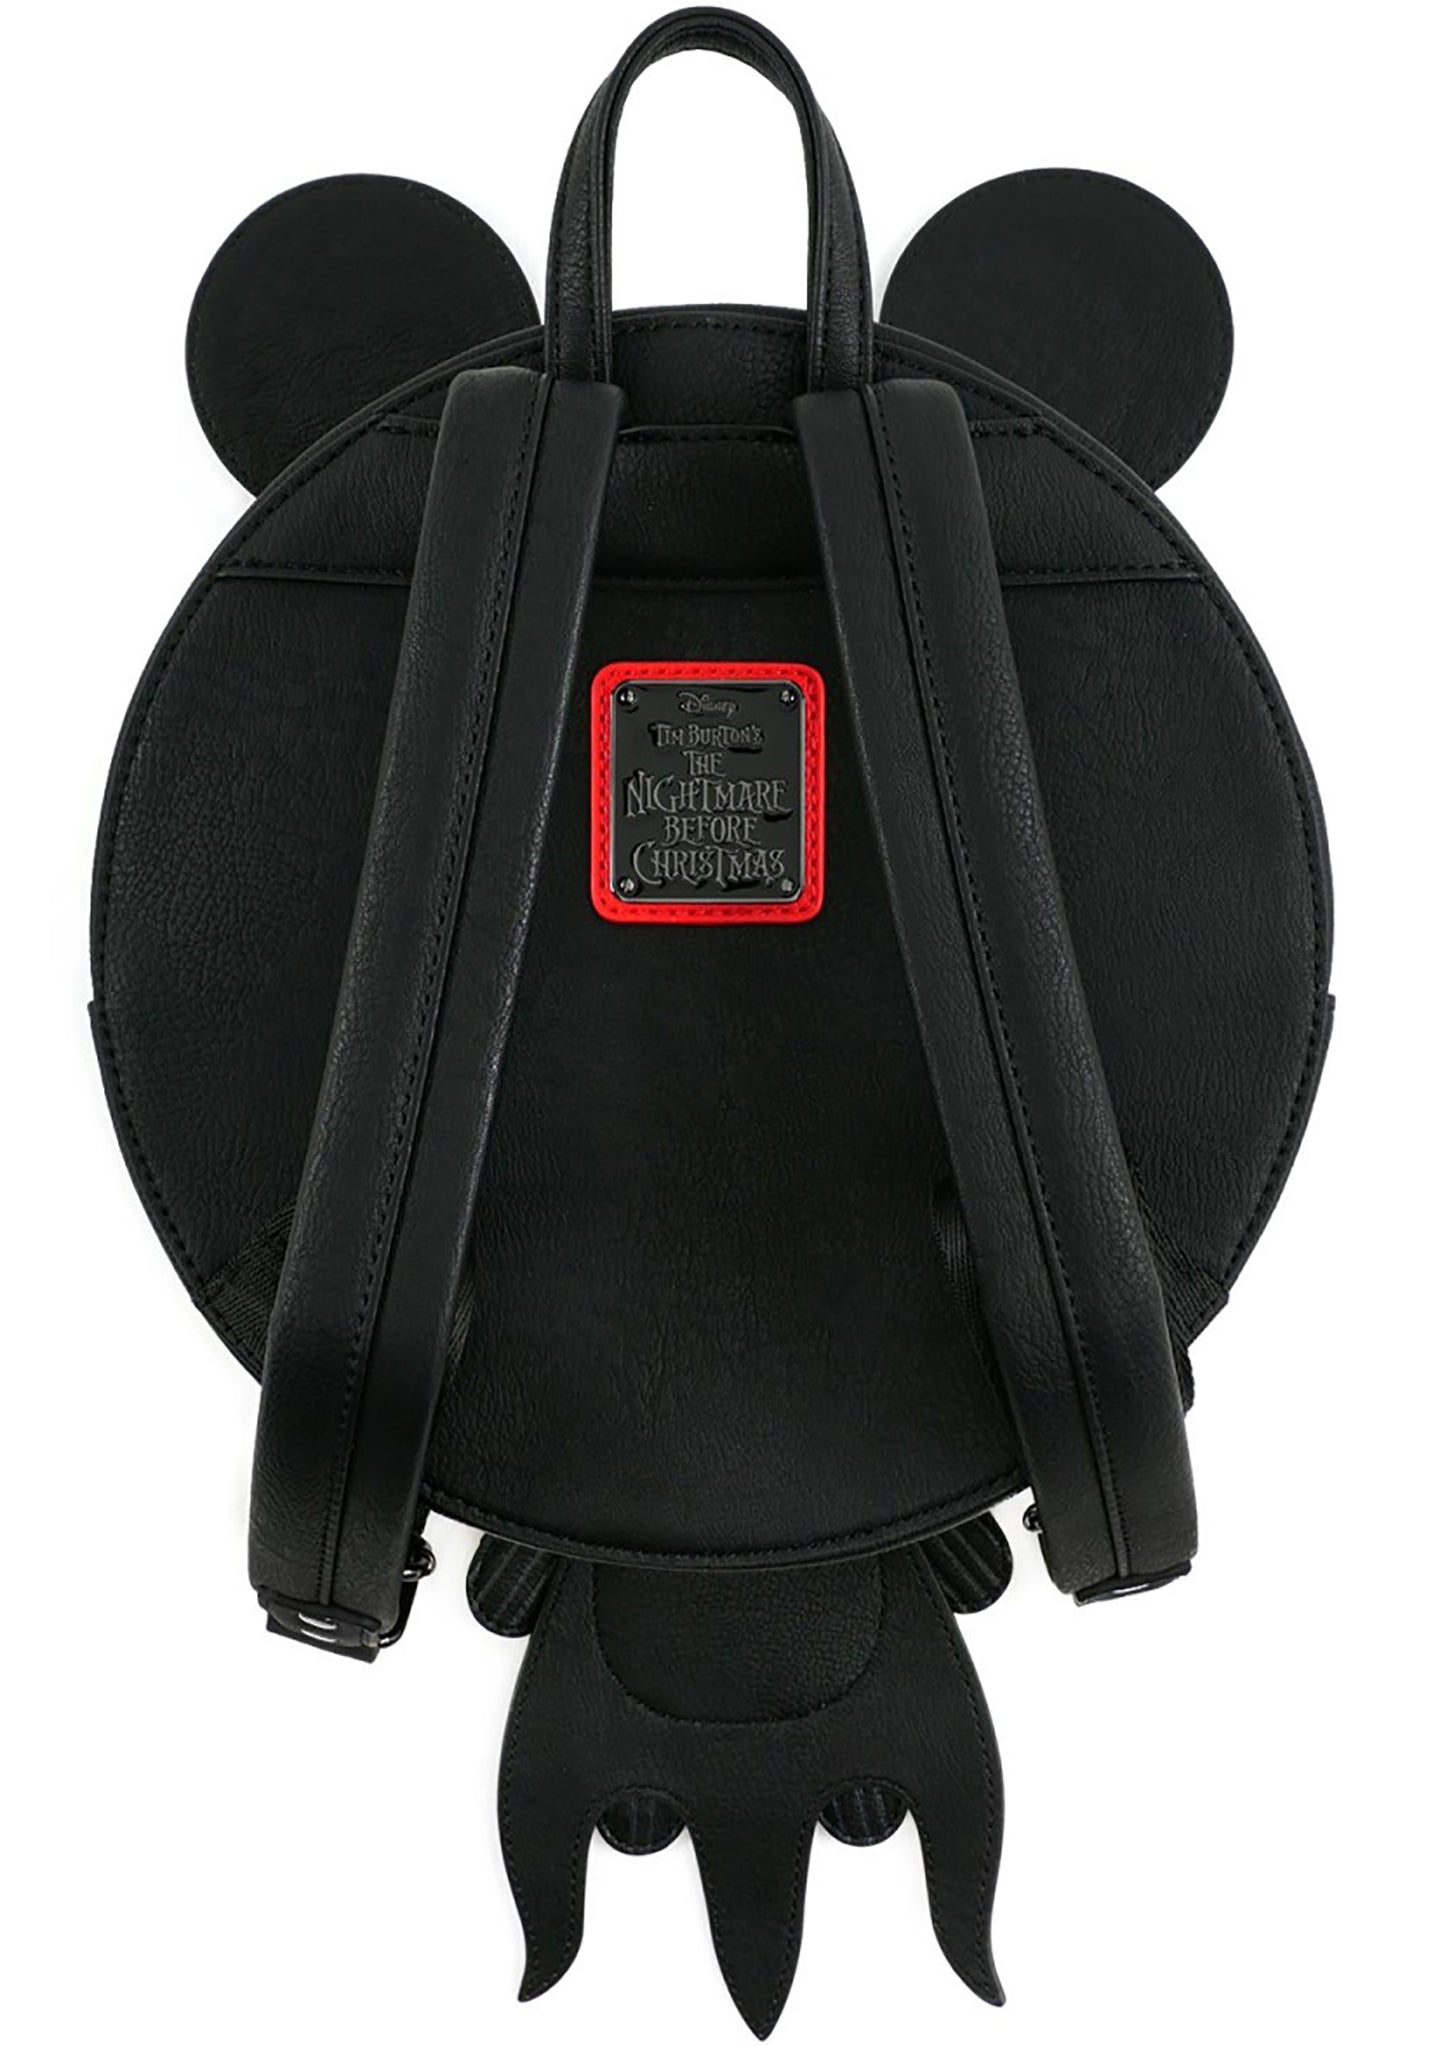 X Nightmare Before Christmas Vampire Teddy Mini Backpack